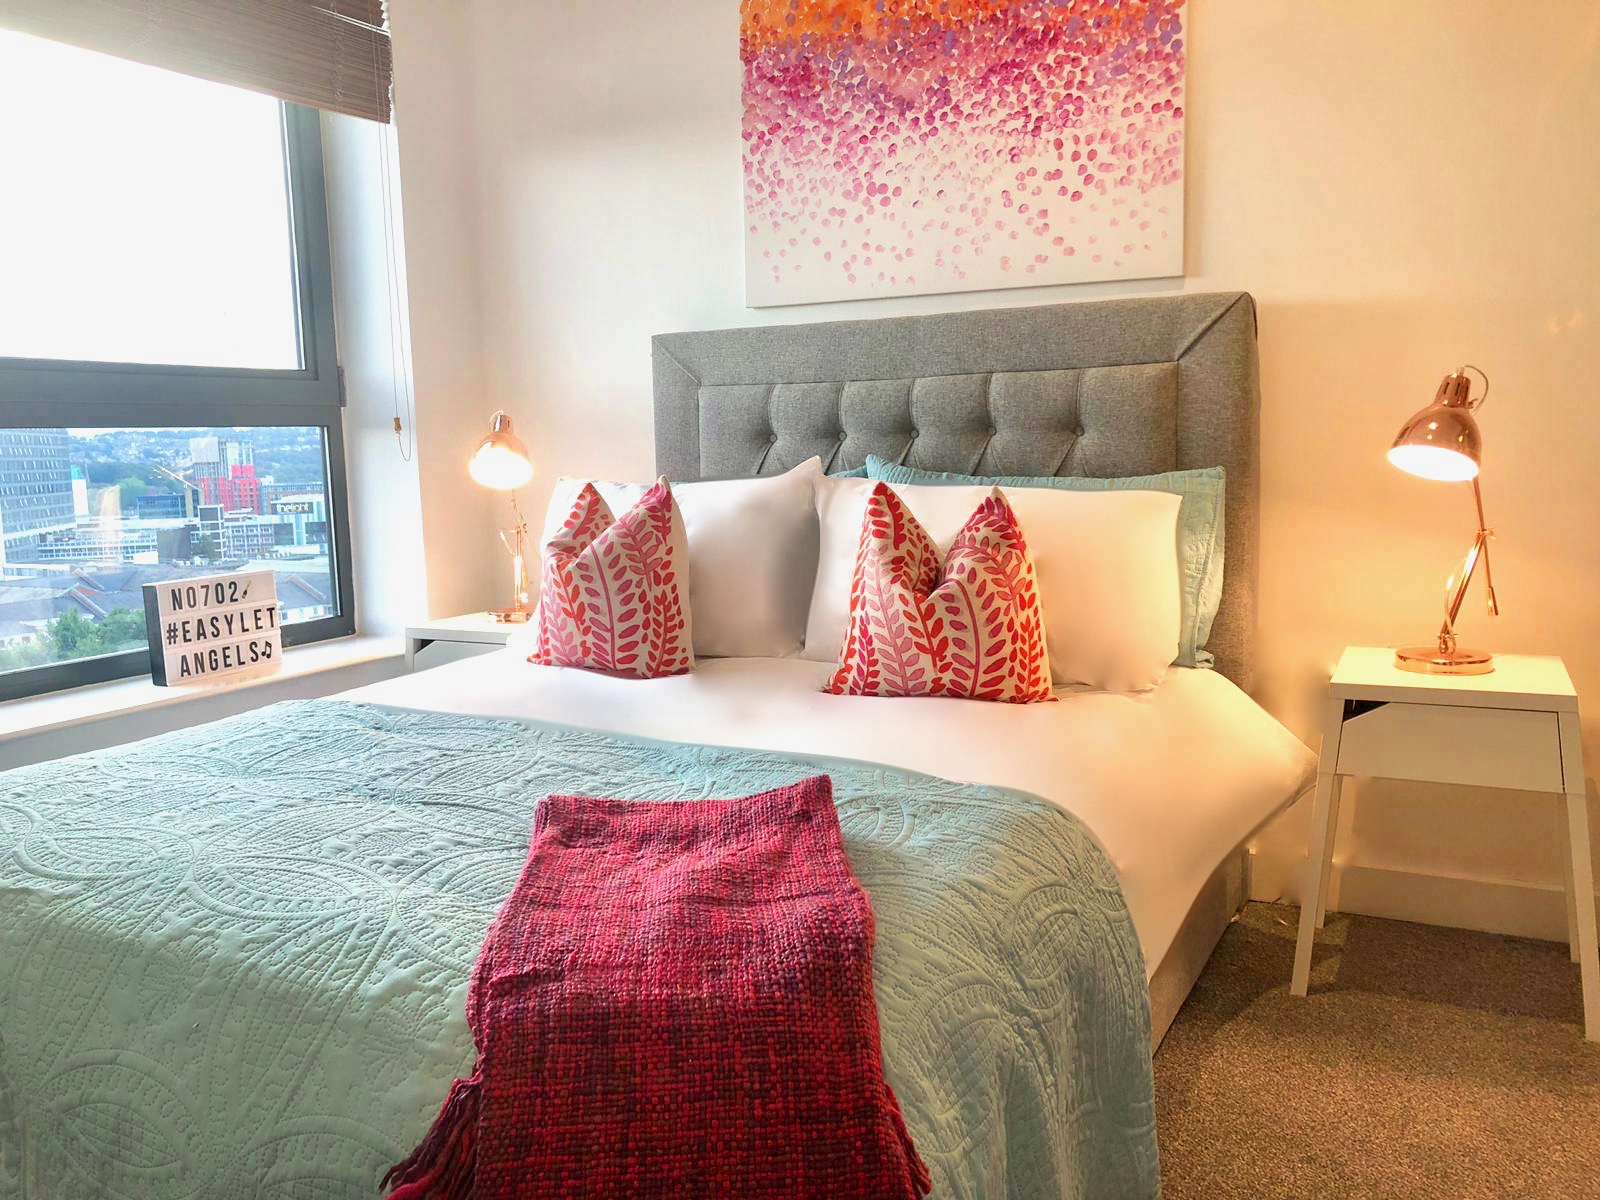 Bedroom at West One Apartment, Centre, Sheffield - Citybase Apartments